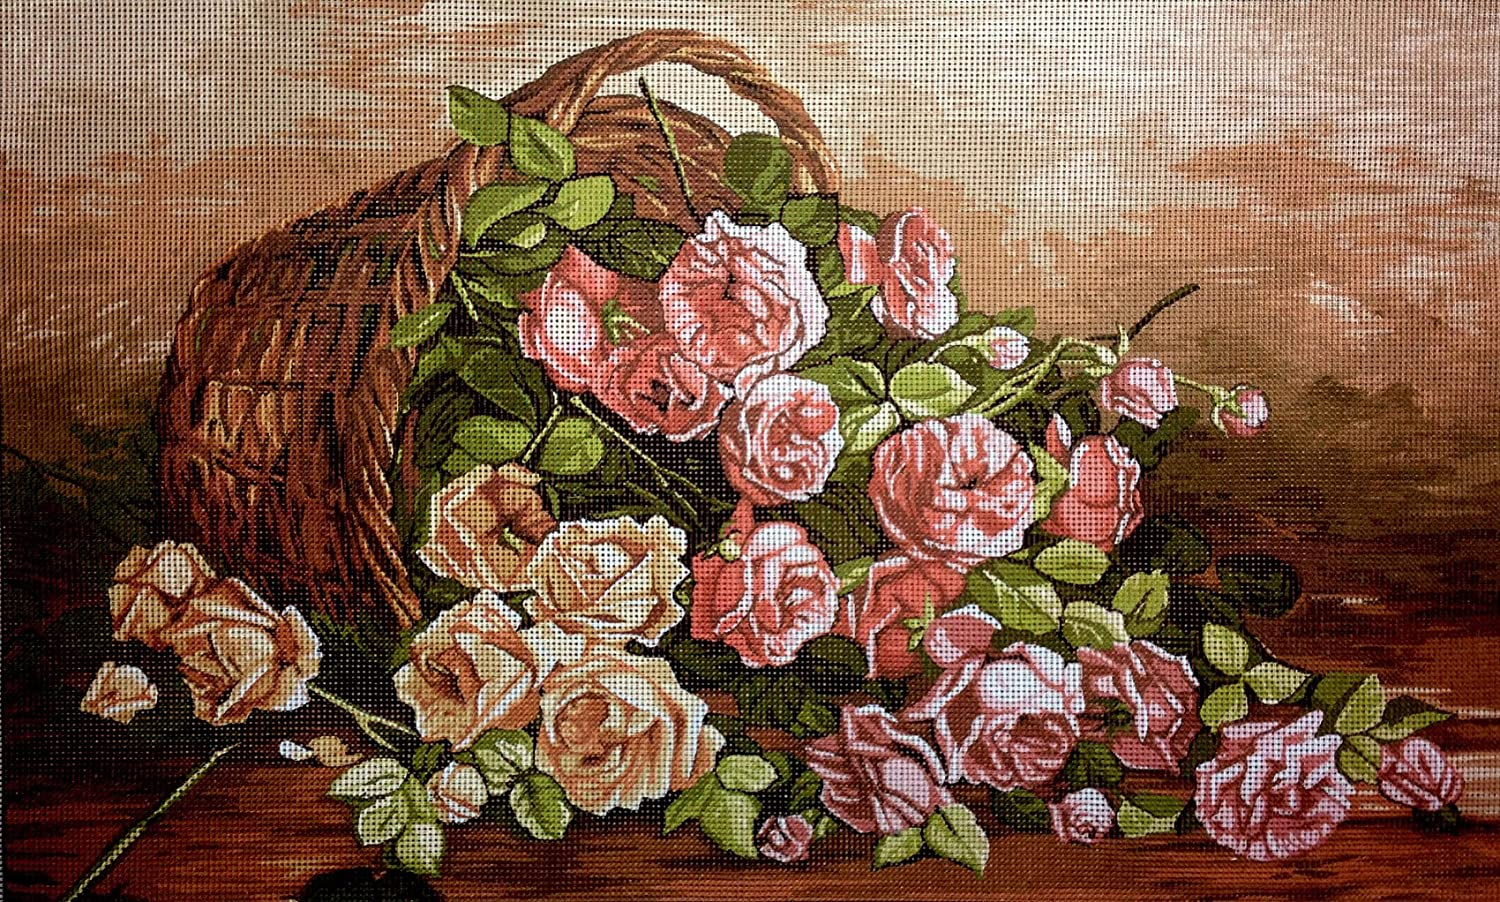 hudema's Needlepoint Kit Roses Easy-to-use Challenge the lowest price of Japan ☆ 20x12 Canvas Printed 50x30cm in T